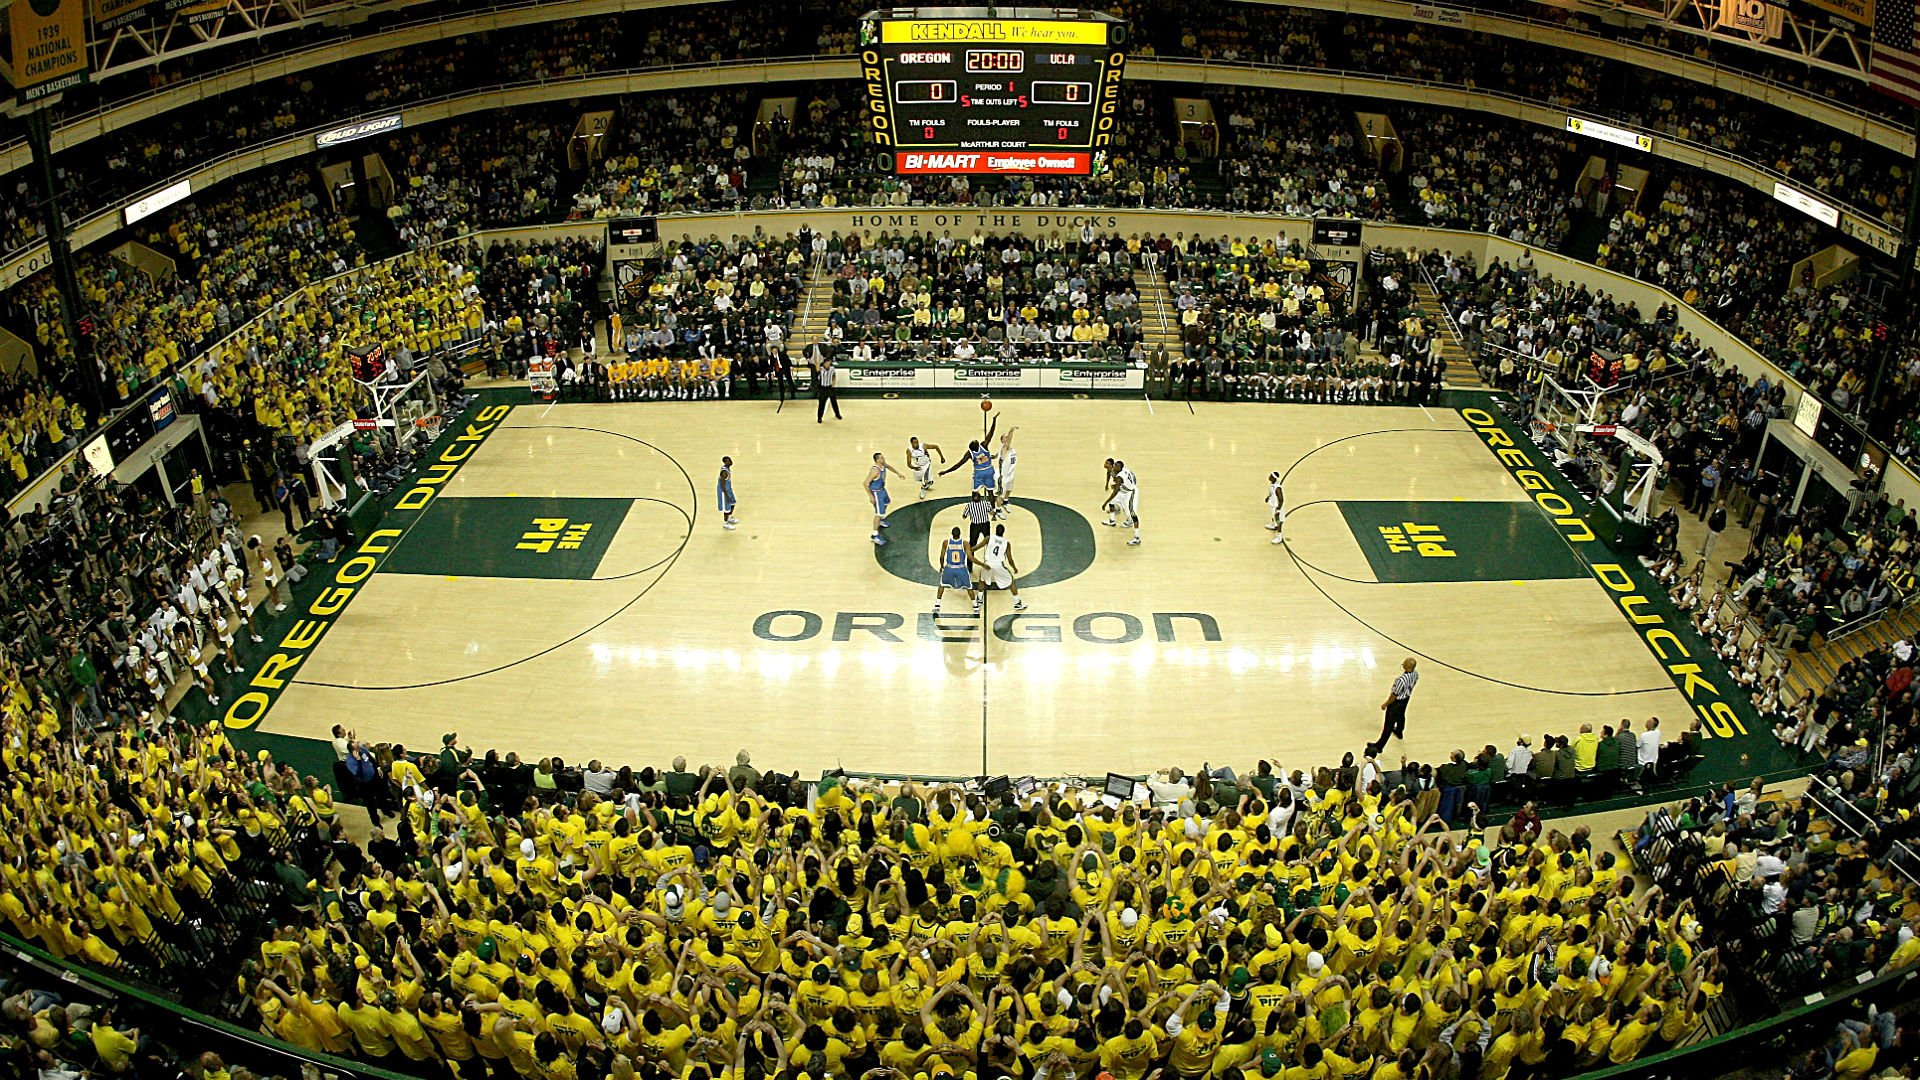 oregon-basketball-021015-usnews-getty-ftr_6iqoxpqi5jxe1lazzbucyoz03.jpg